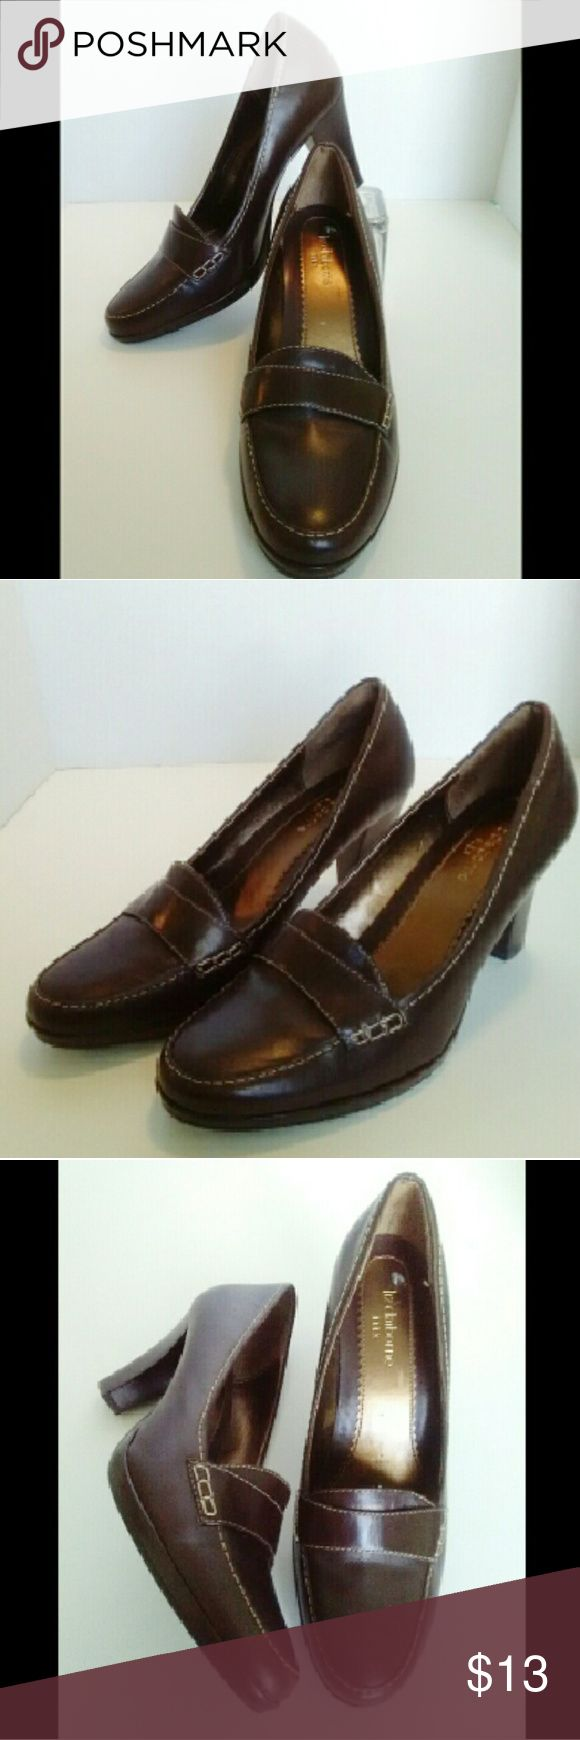 Liz Claiborne Flex shoes Beautiful Liz Claiborne shoes.  Very good condition, not worn much at all.  Leather upper/balance manmade, stated on inside of shoe. Liz Claiborne Shoes Heels